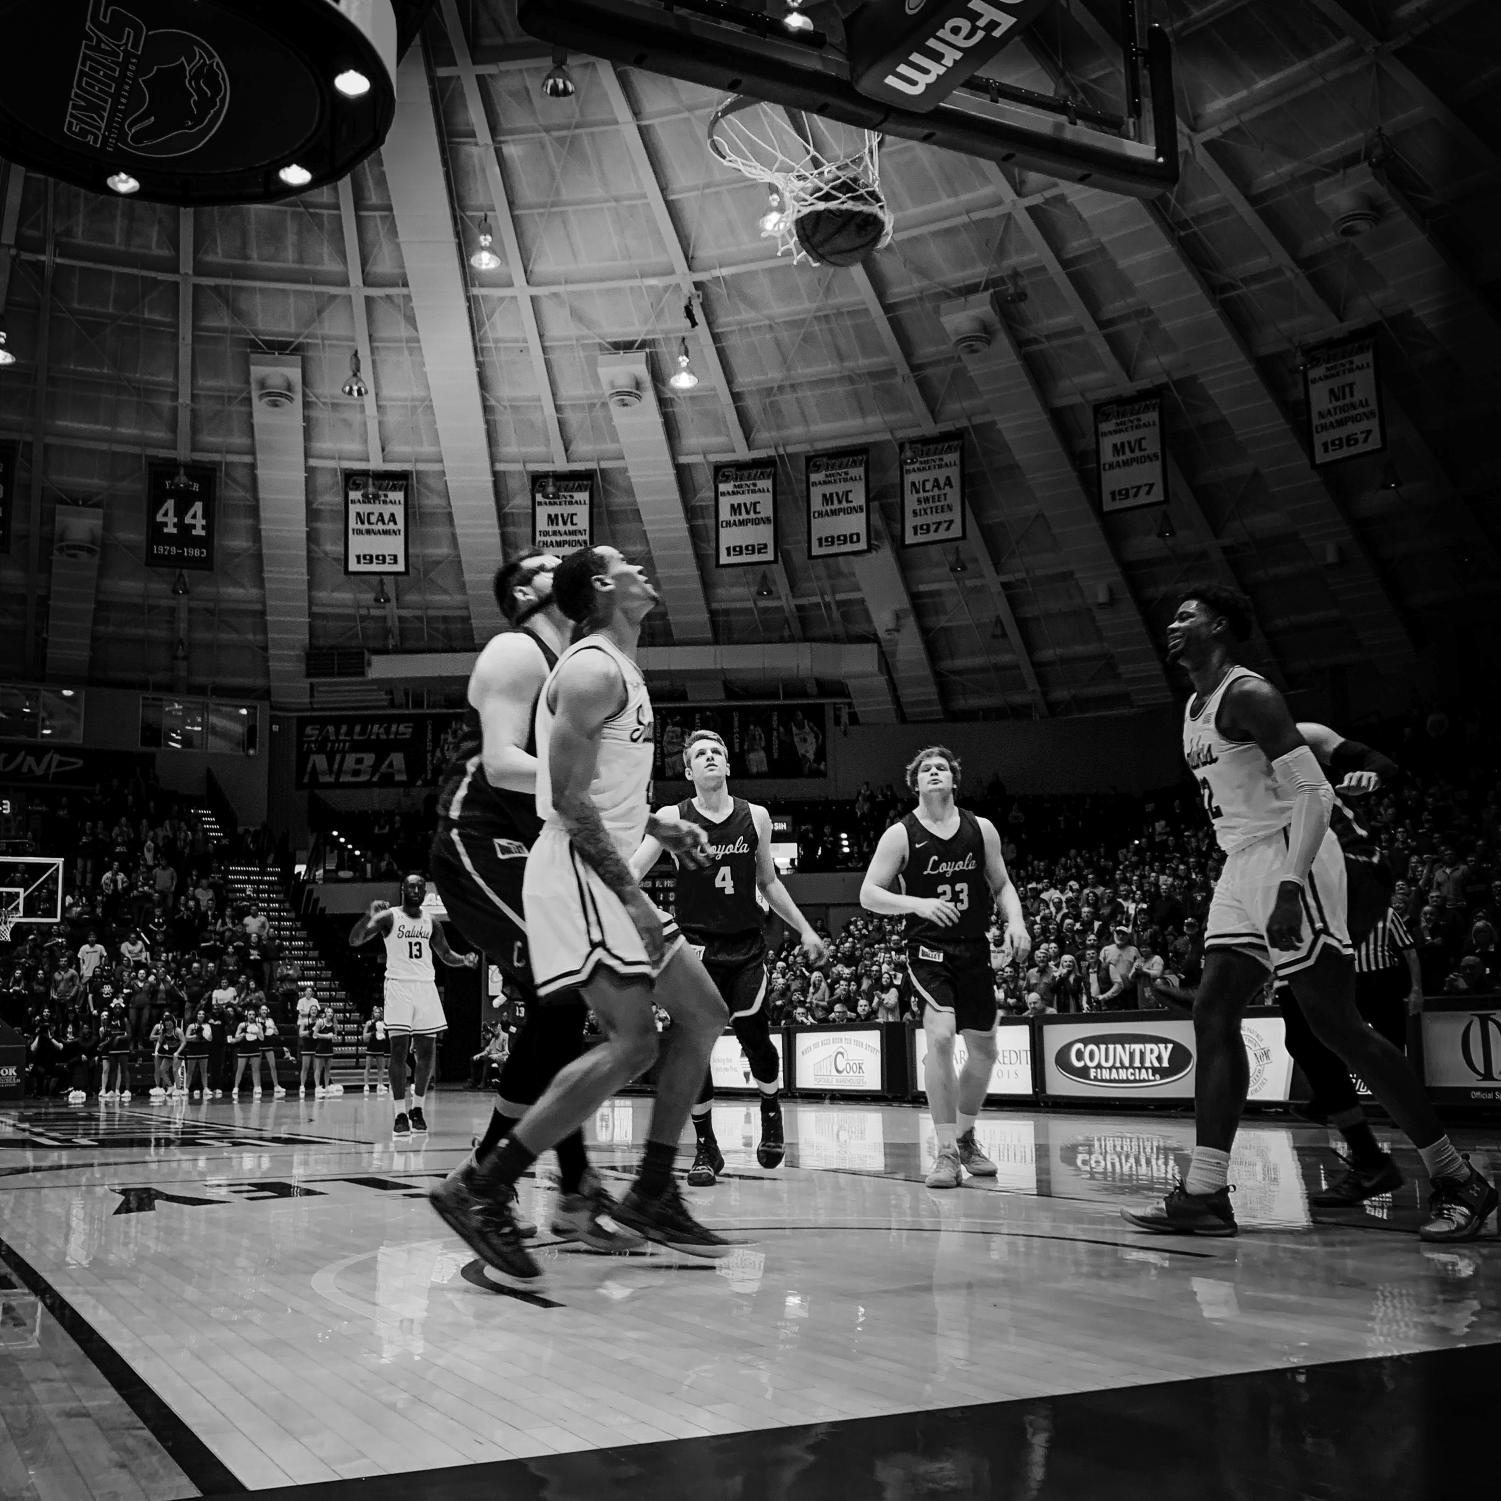 The+teams+watch+a+basket+on+Sunday%2C+Feb.+24%2C+2019%2C+during+a+matchup+between+the+Southern+Illinois+Salukis+and+the+Loyola+Ramblers+at+SIU+Arena.